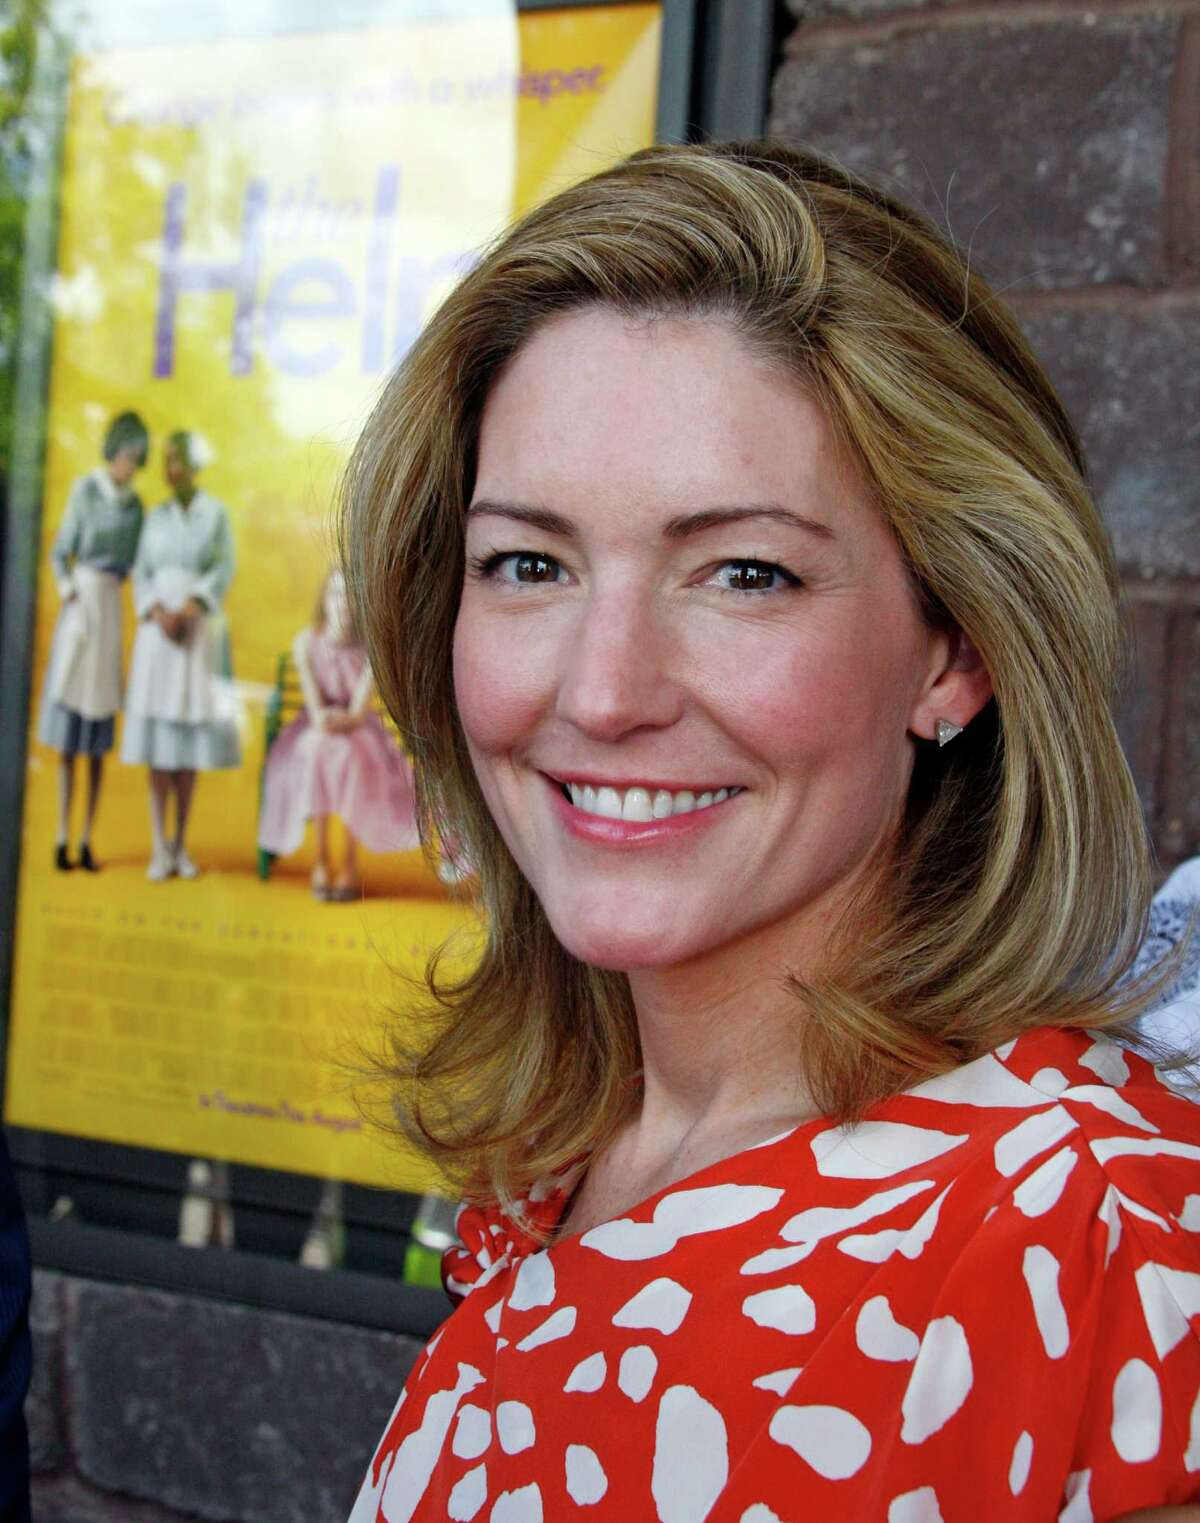 Author Kathryn Stockett poses by a poster for the movie made from her book prior to a benefit screening of